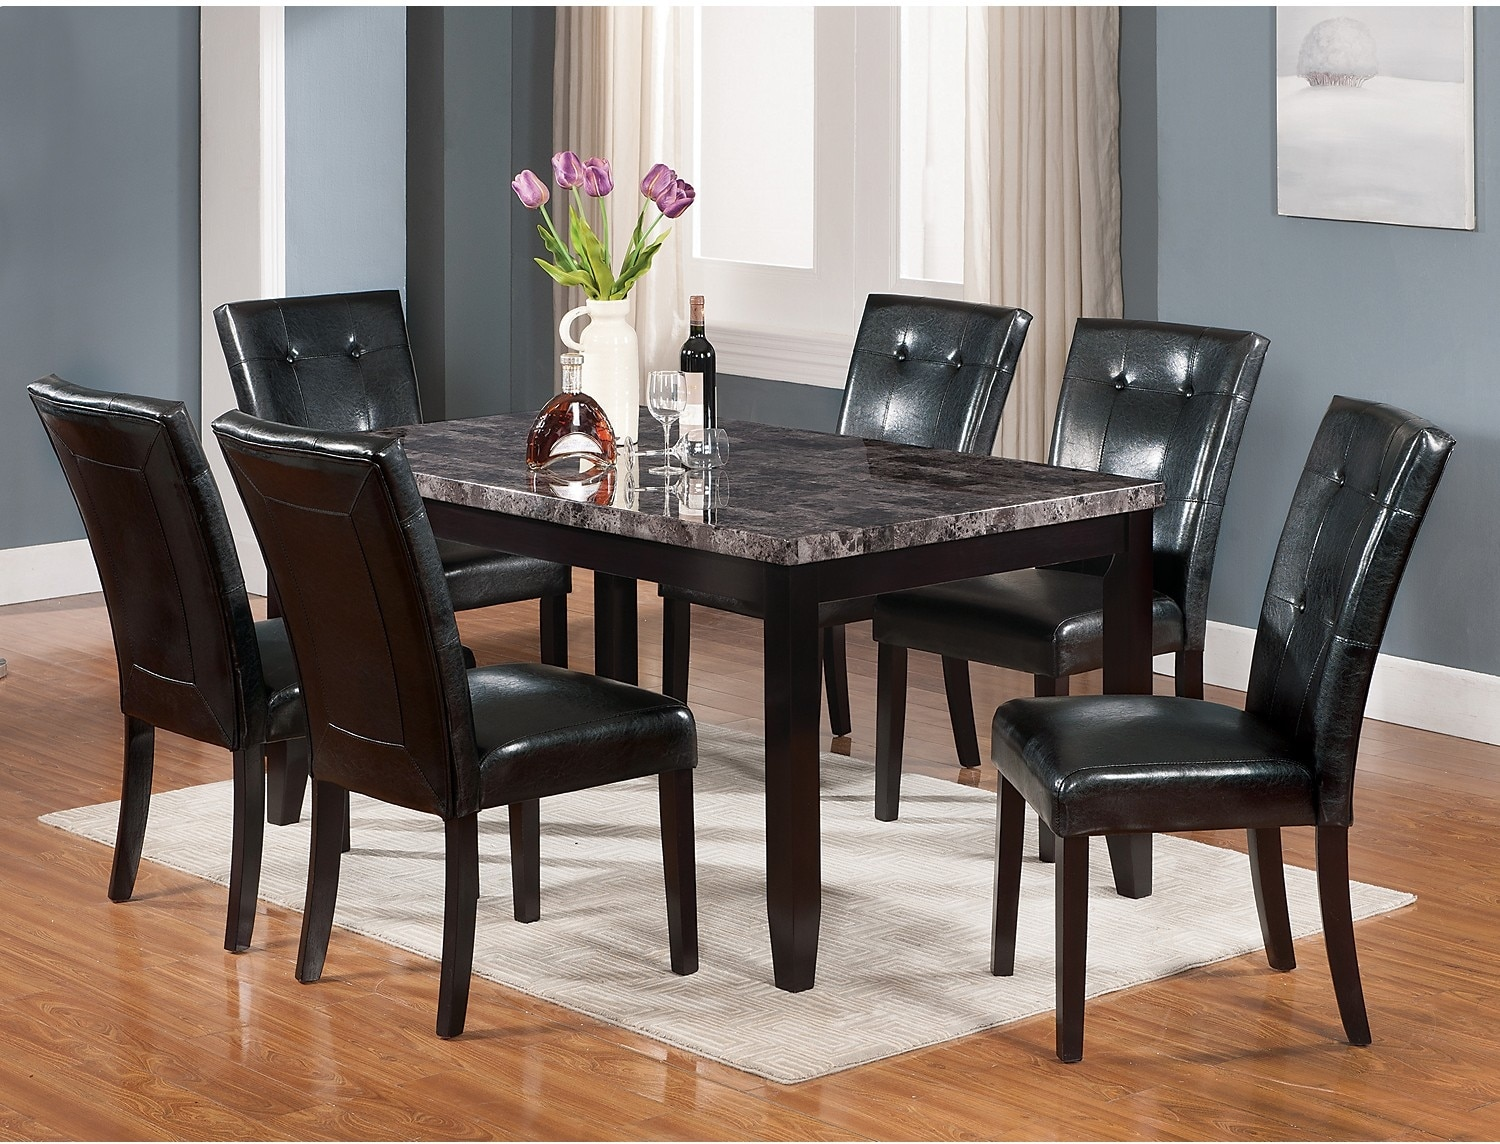 The Brick Dining Room Sets Canada